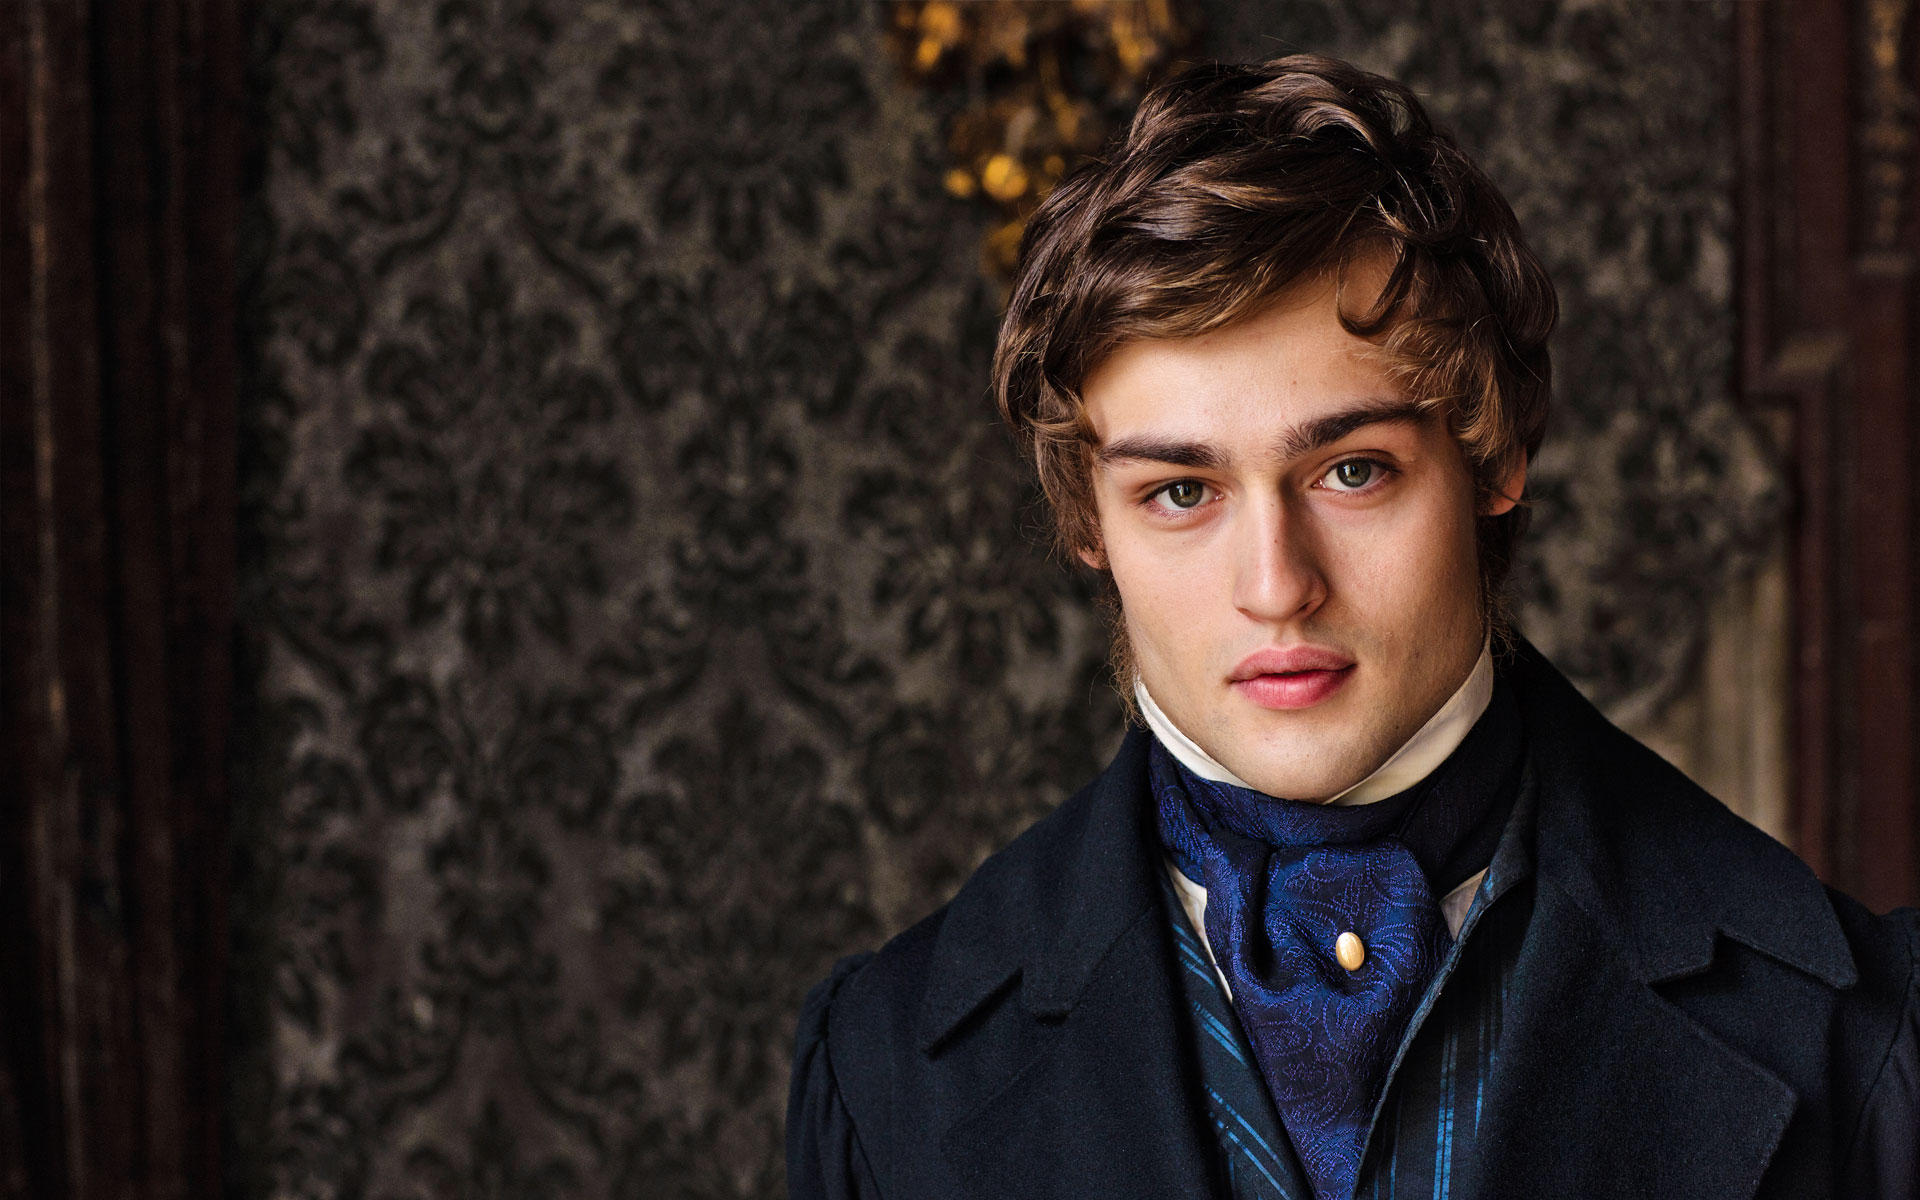 1920x1200 - Douglas Booth Wallpapers 4